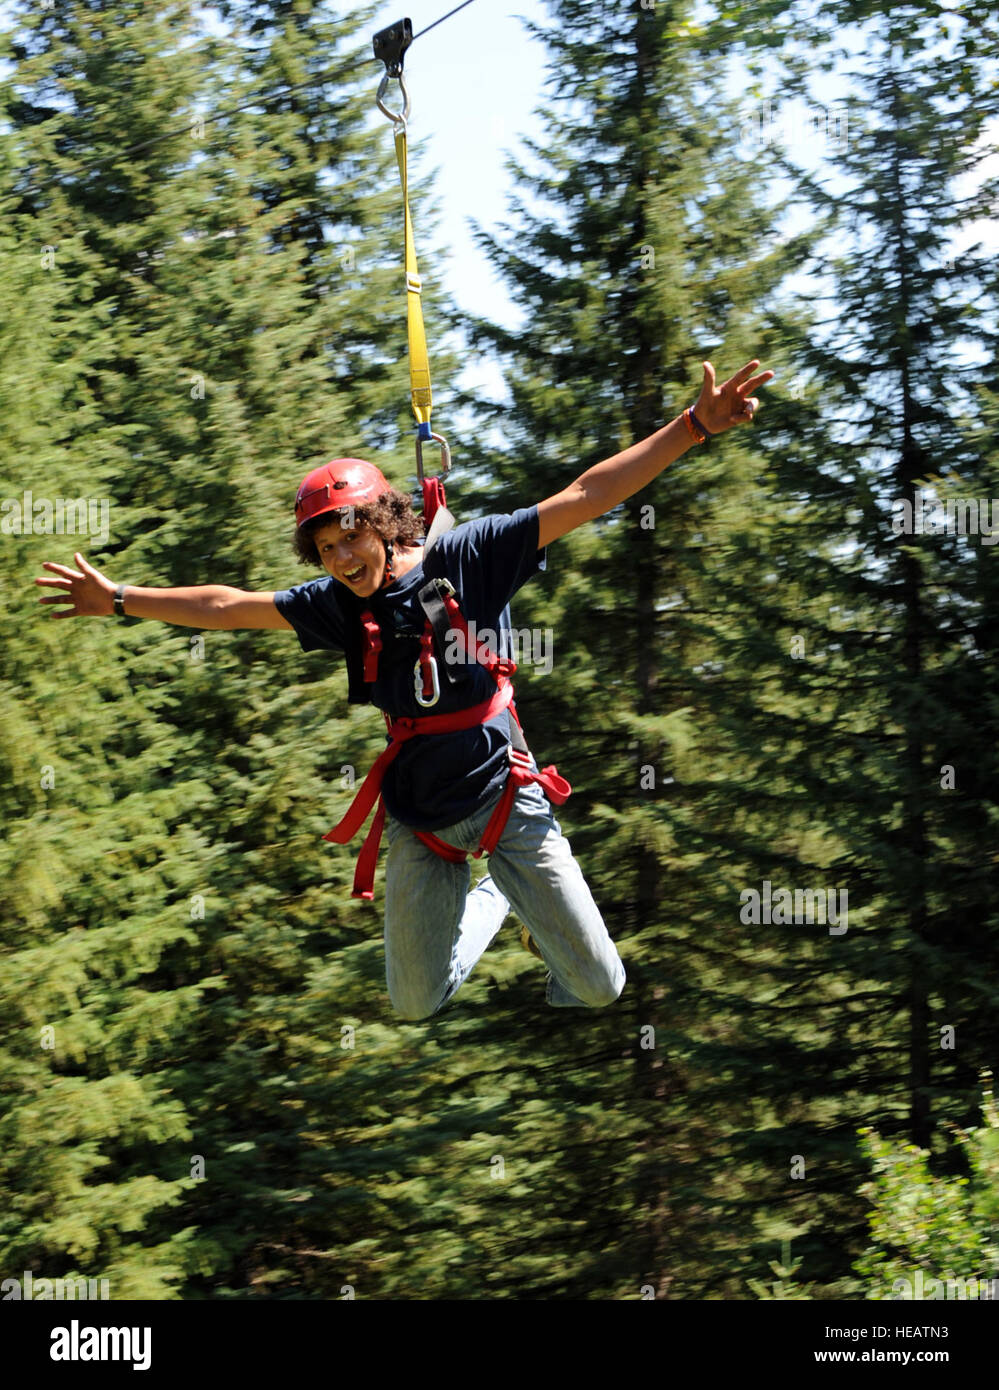 MOUNTAIN HOME AIR FORCE BASE, Idaho -- Sterling Adamson, camp participant, swings down a high-ropes zip line Aug. - Stock Image